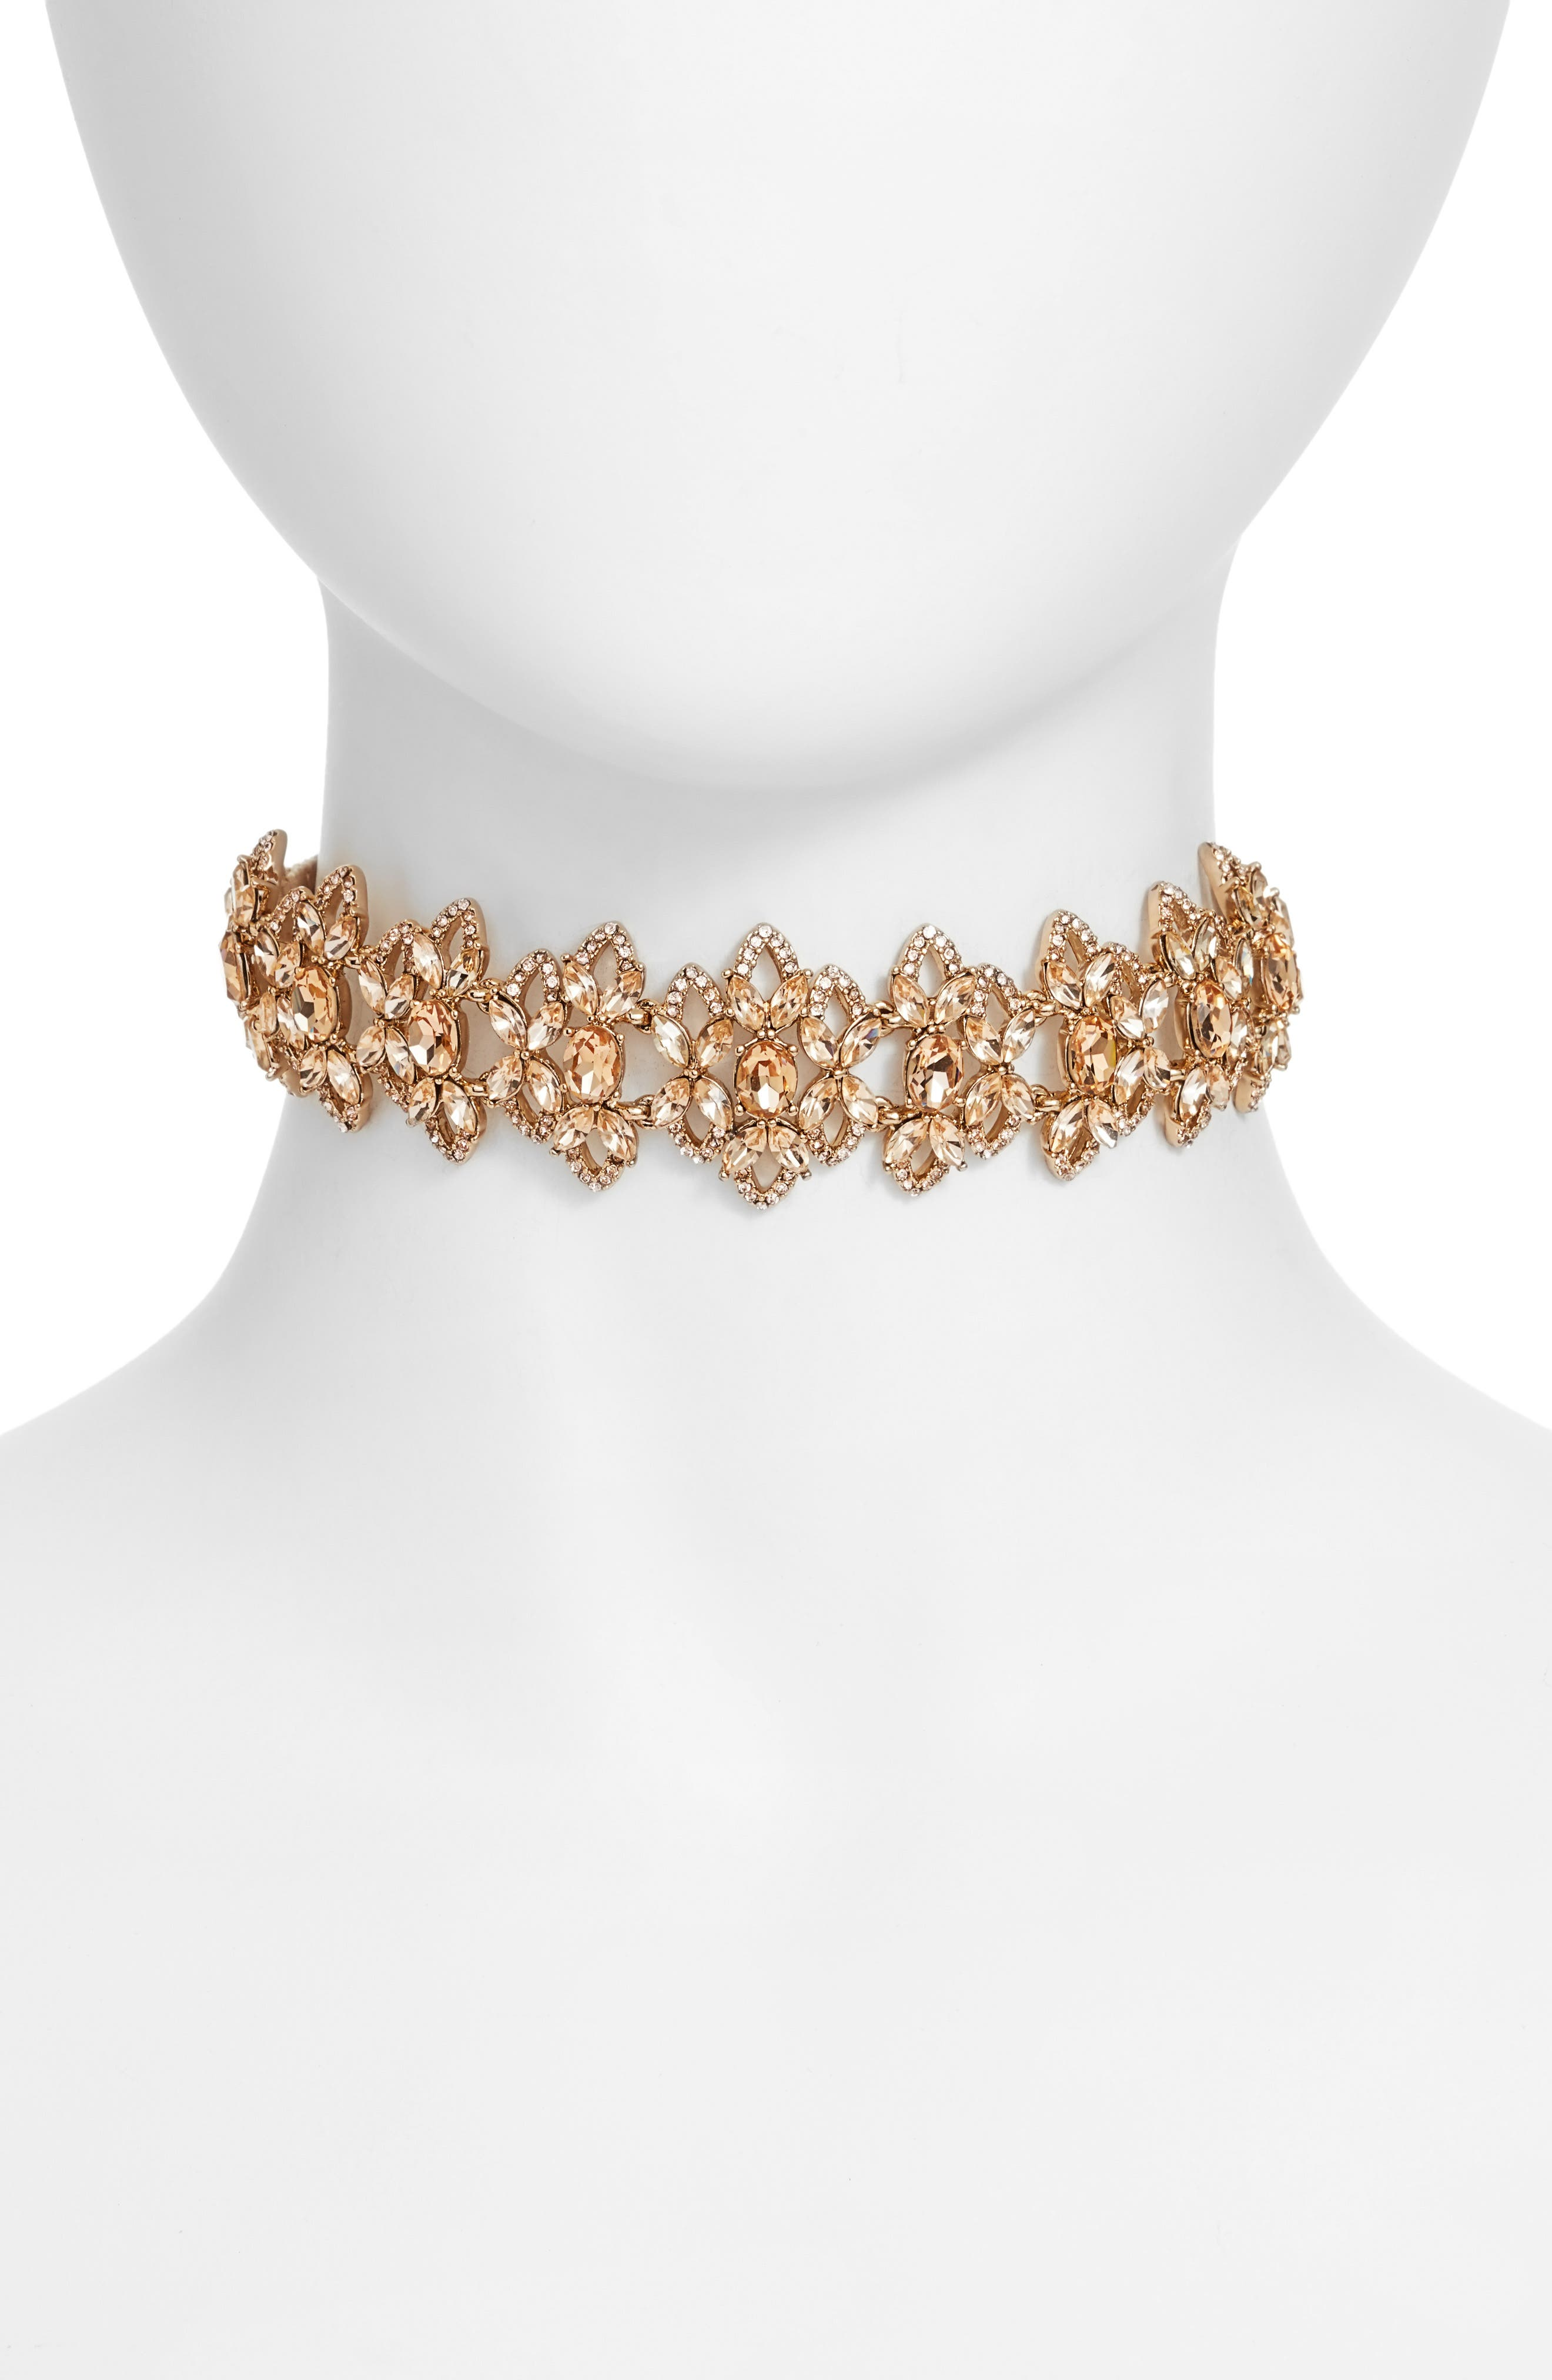 4-Way Convertible Necklace,                         Main,                         color, Champagne / Gold